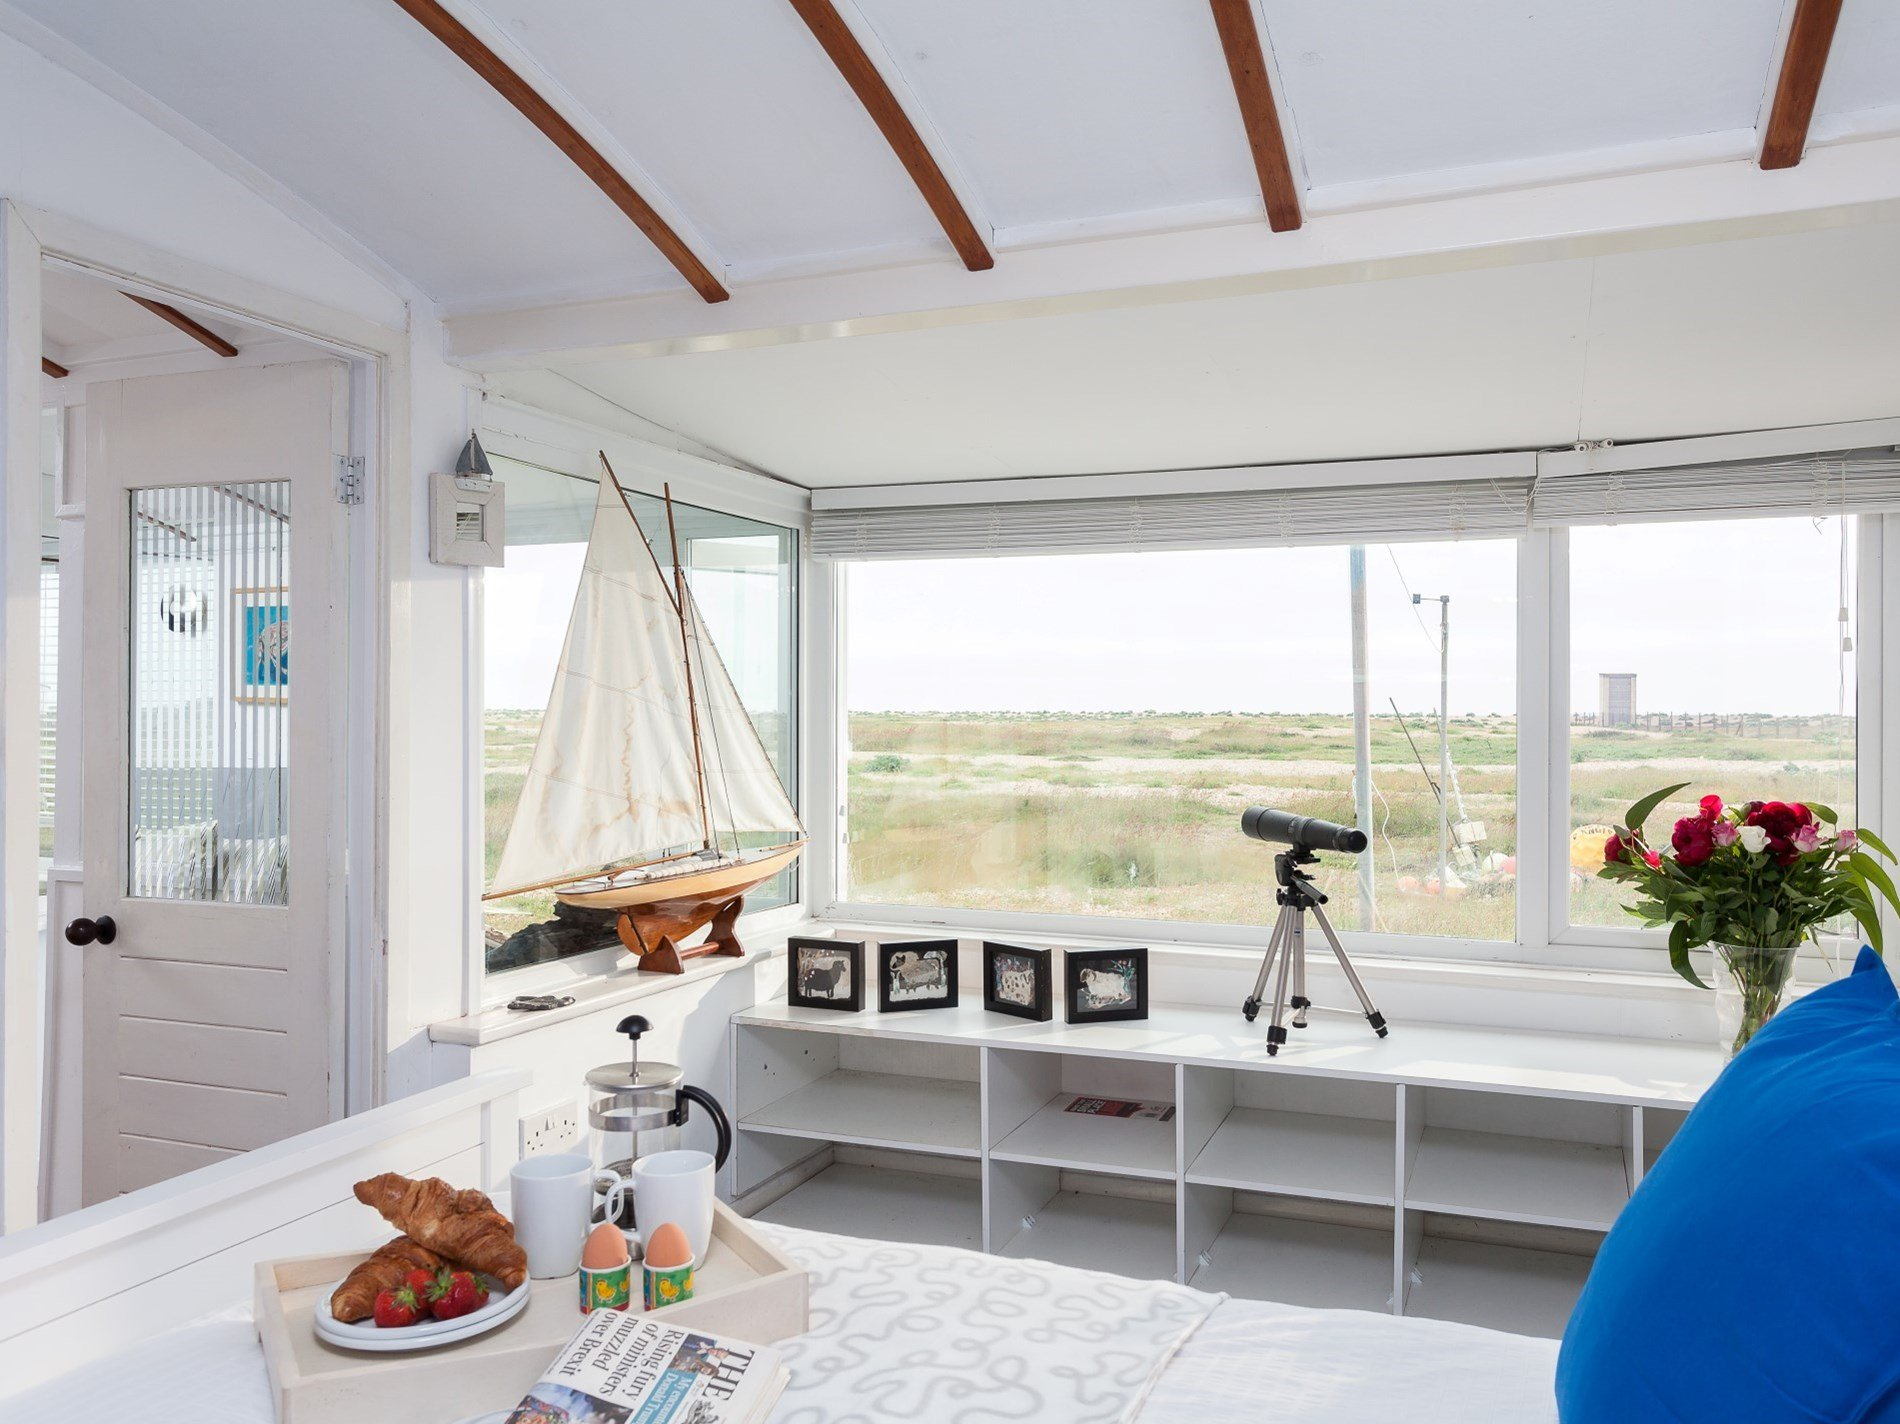 Enjoy the view from the double bedroom